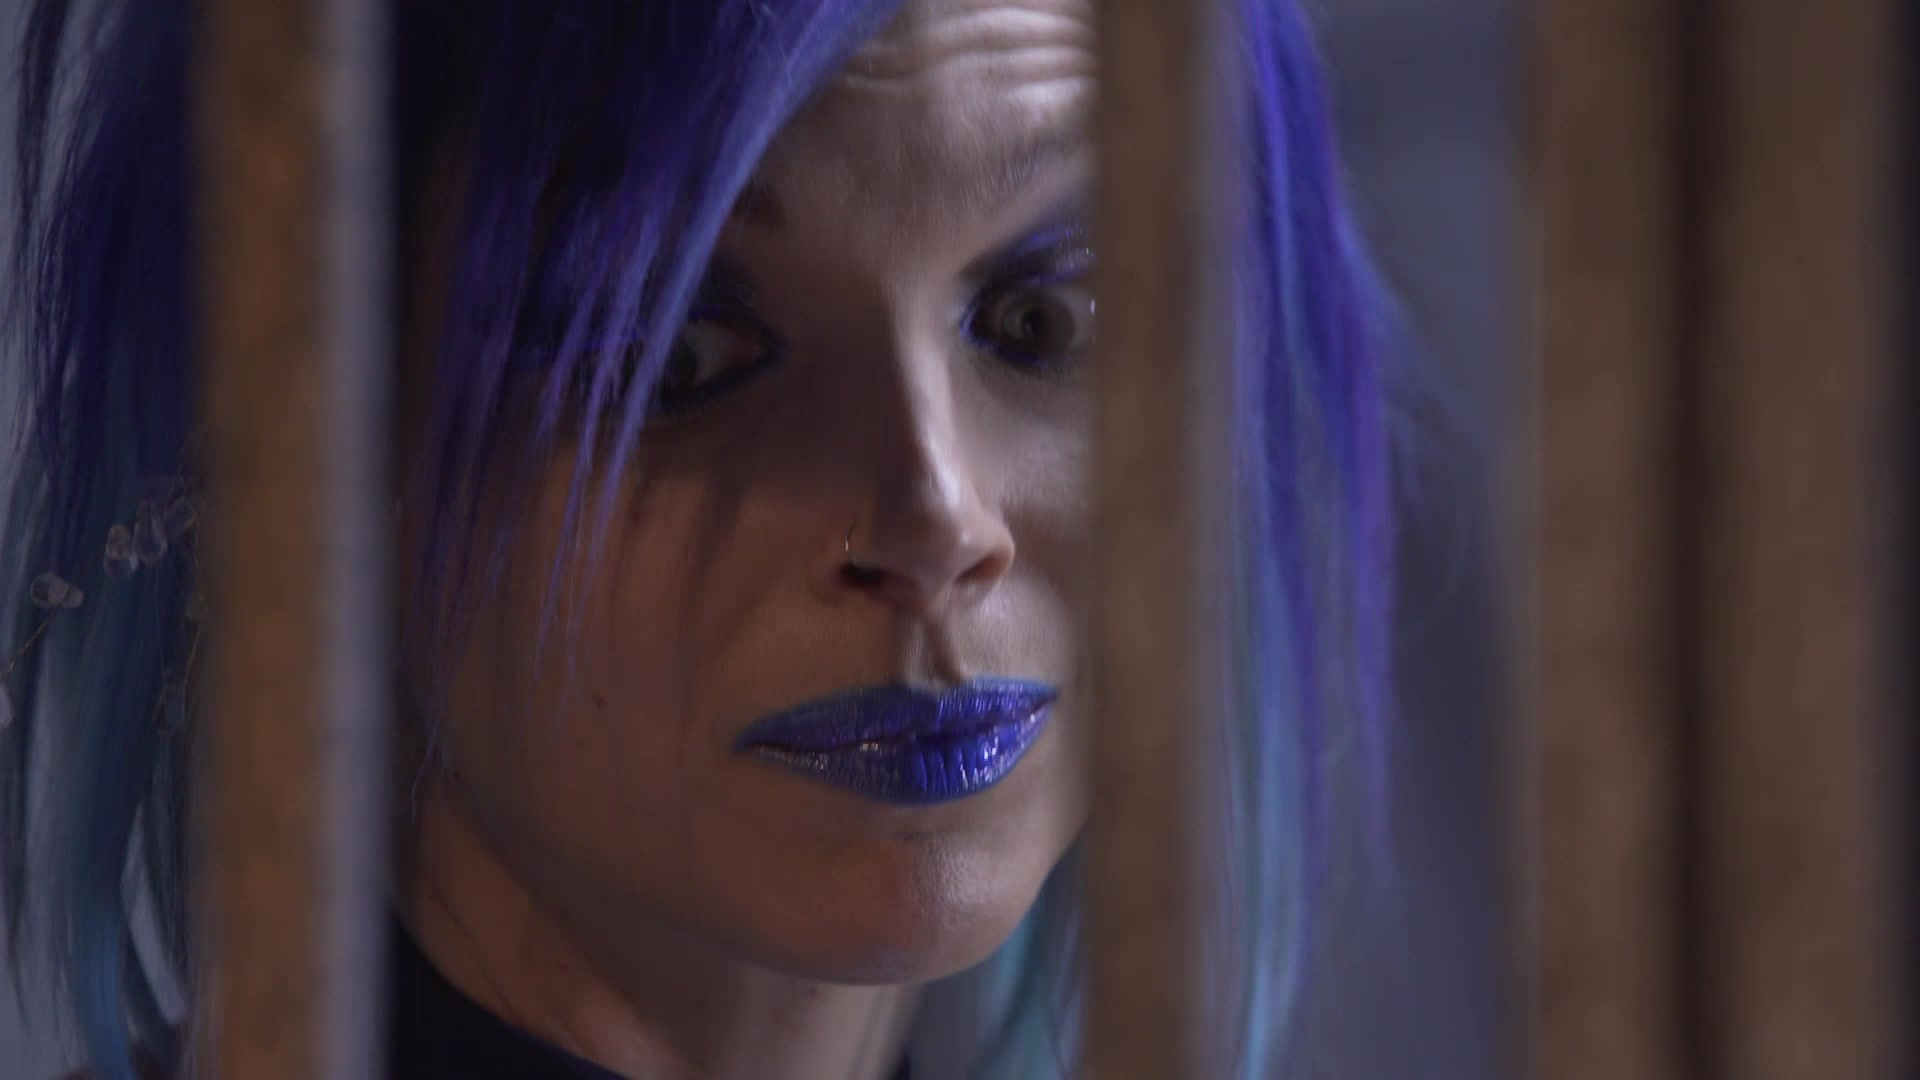 Scene with Anna Bell Peaks and Katy Kiss - image 11 out of 20